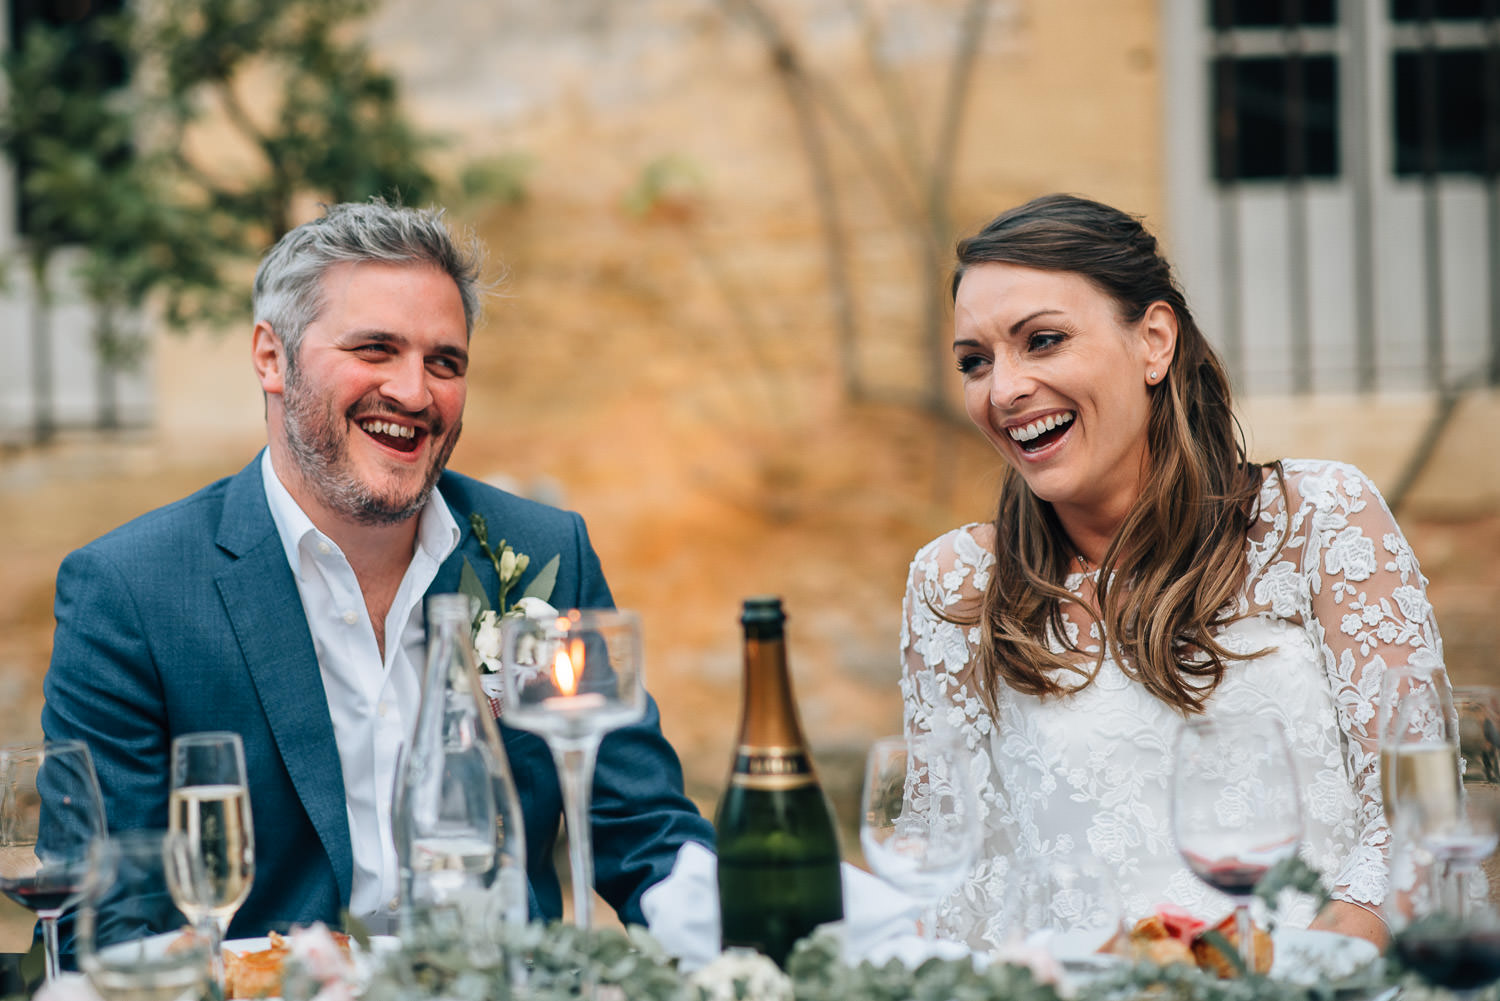 Emotional wedding speeches in chateau de la bourlie wedding by french destination wedding photographer the shannons photography